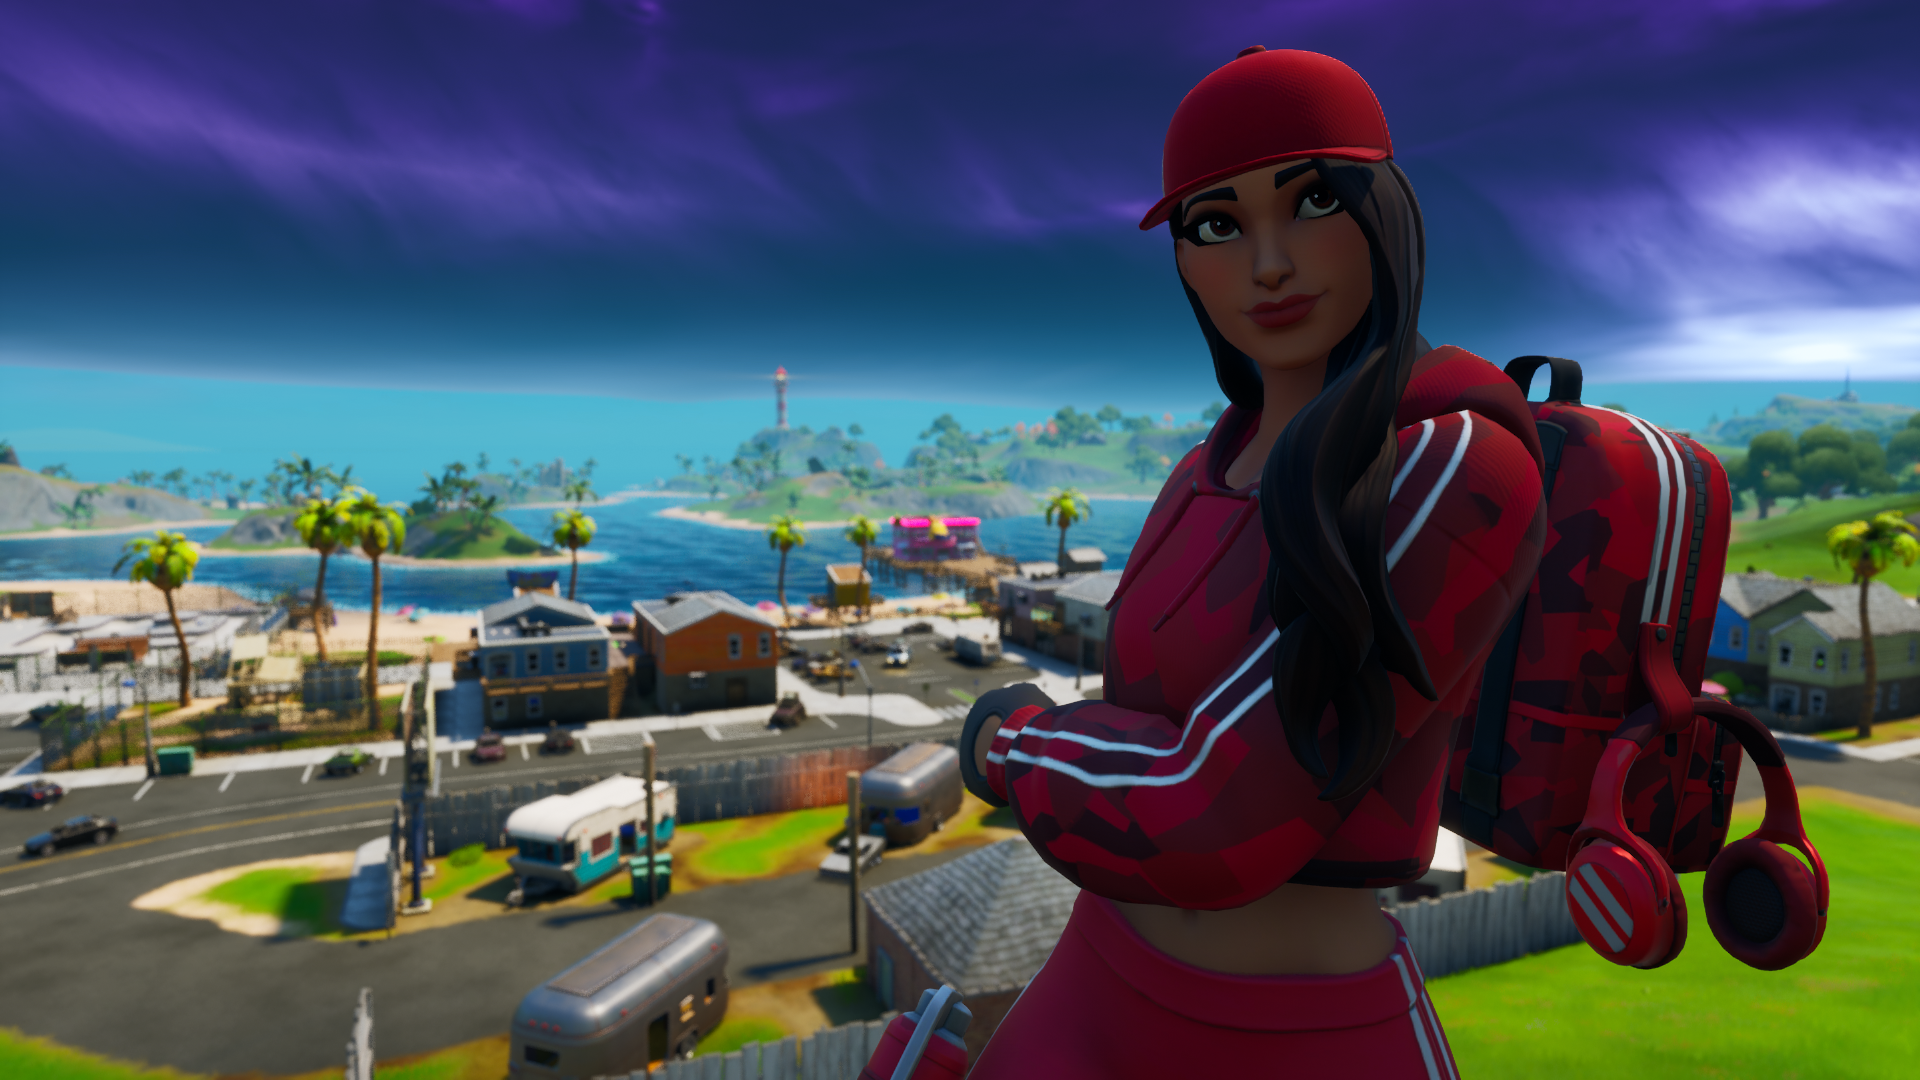 Ruby Fortnite Skin Wallpapers Top Free Ruby Fortnite Skin Backgrounds Wallpaperaccess